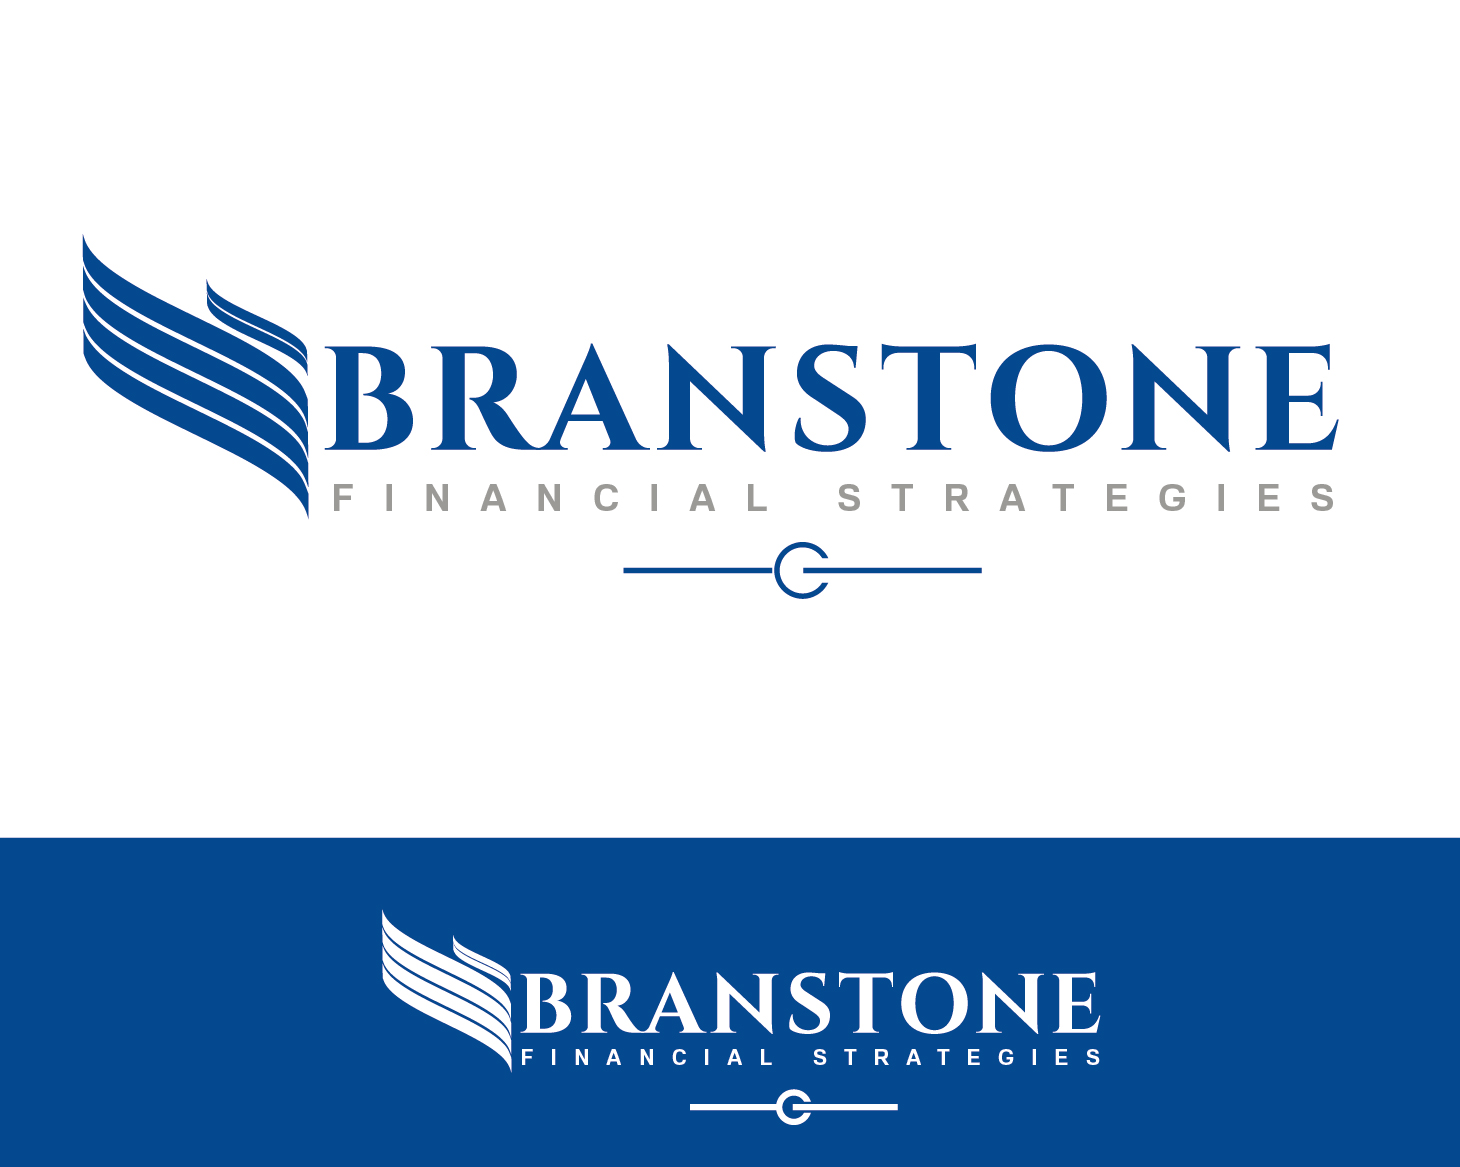 Logo Design by VENTSISLAV KOVACHEV - Entry No. 128 in the Logo Design Contest Inspiring Logo Design for Branstone Financial Strategies.